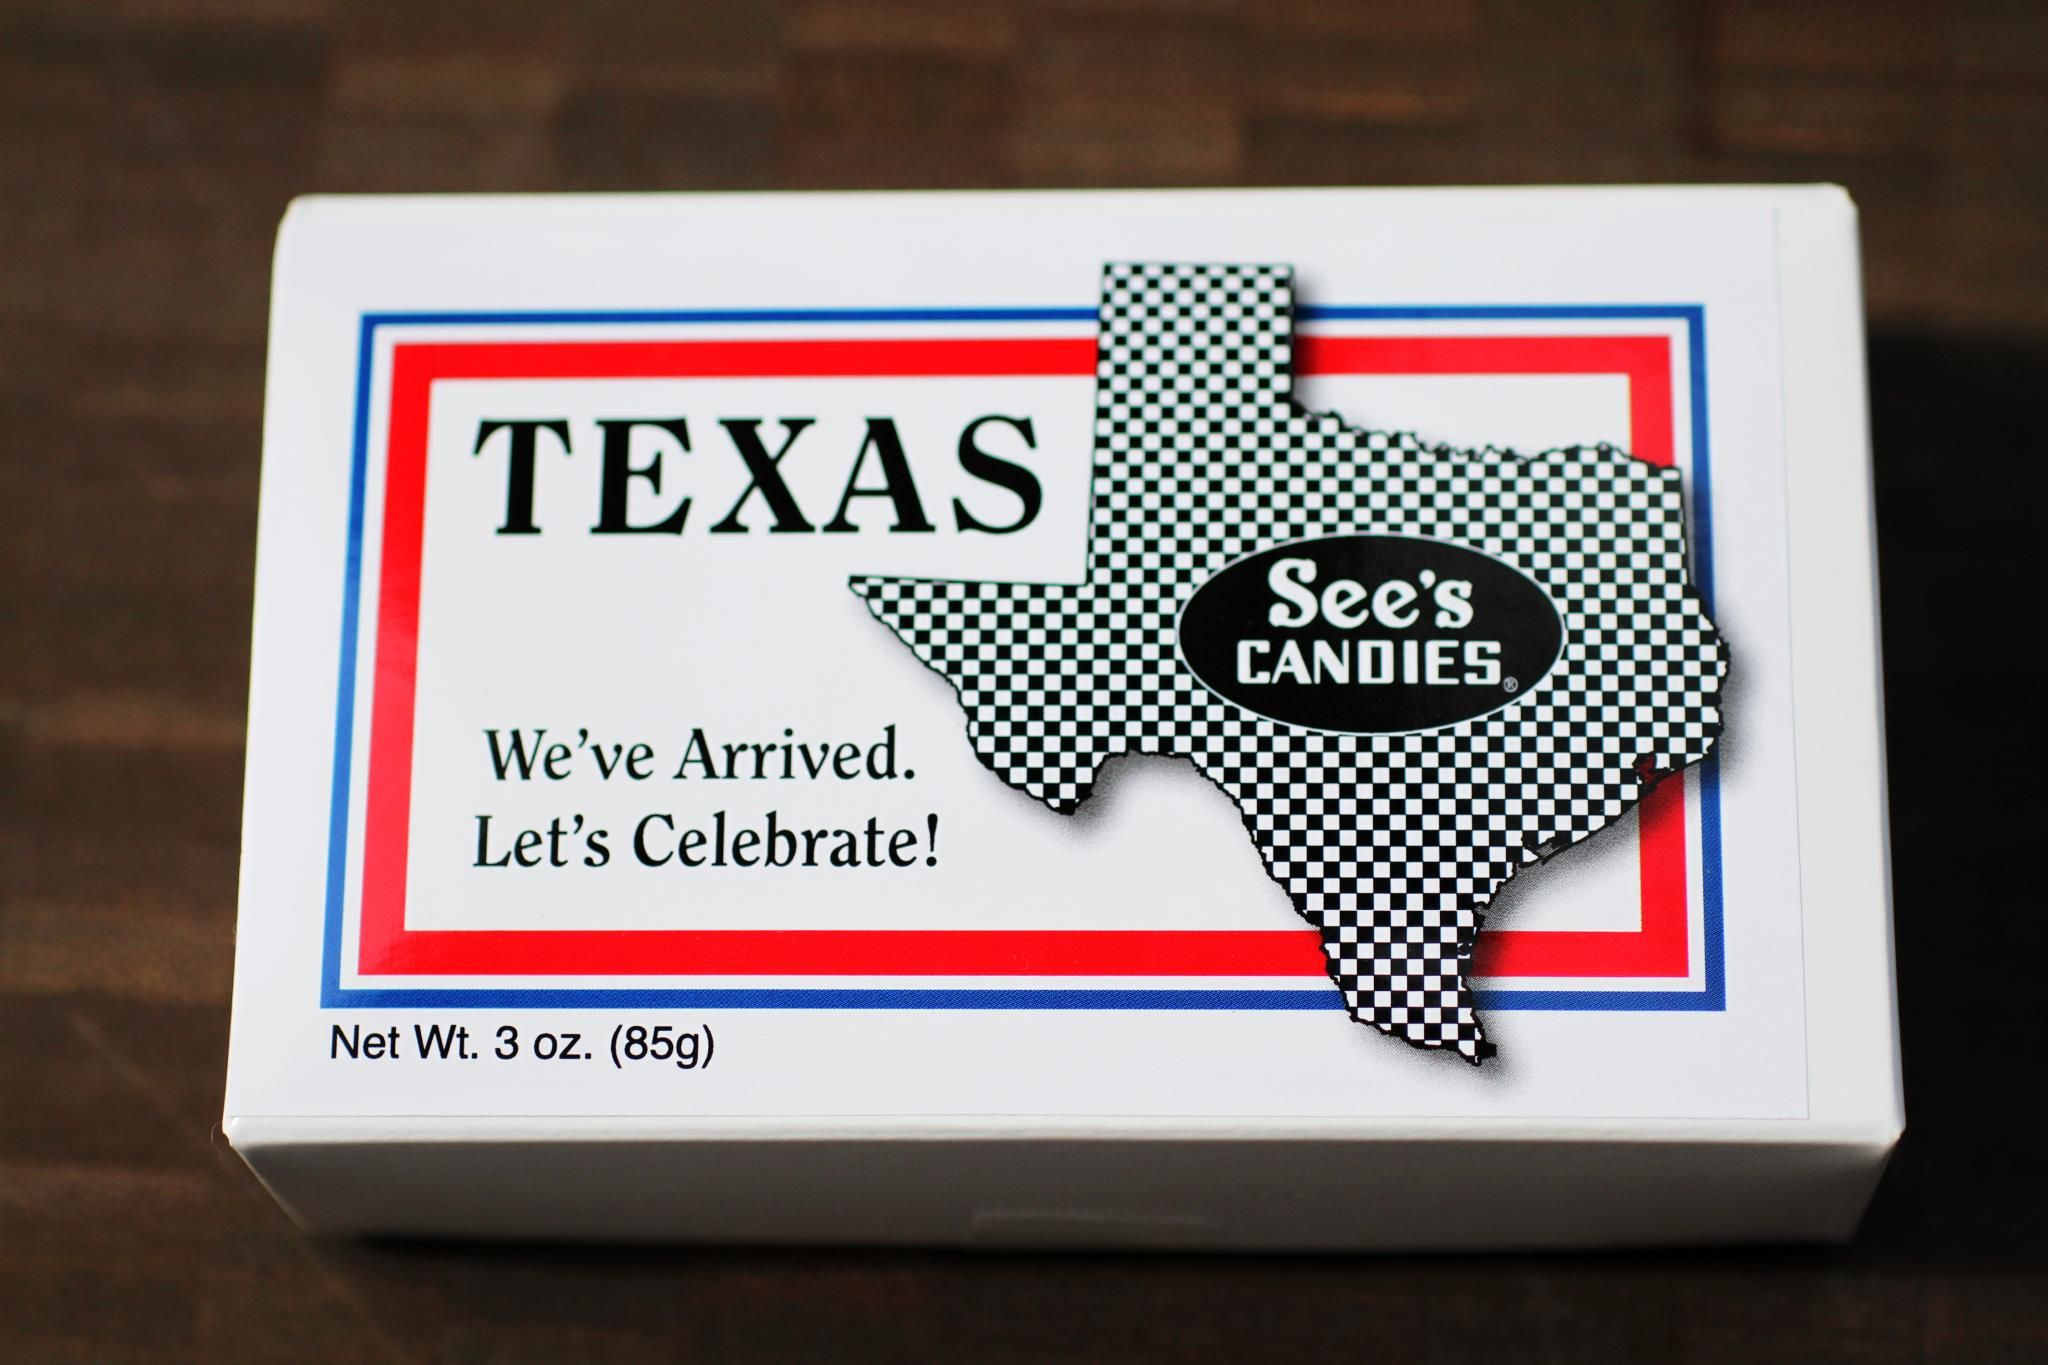 See's Candies opened its first TEXAS store today, 4/27/12